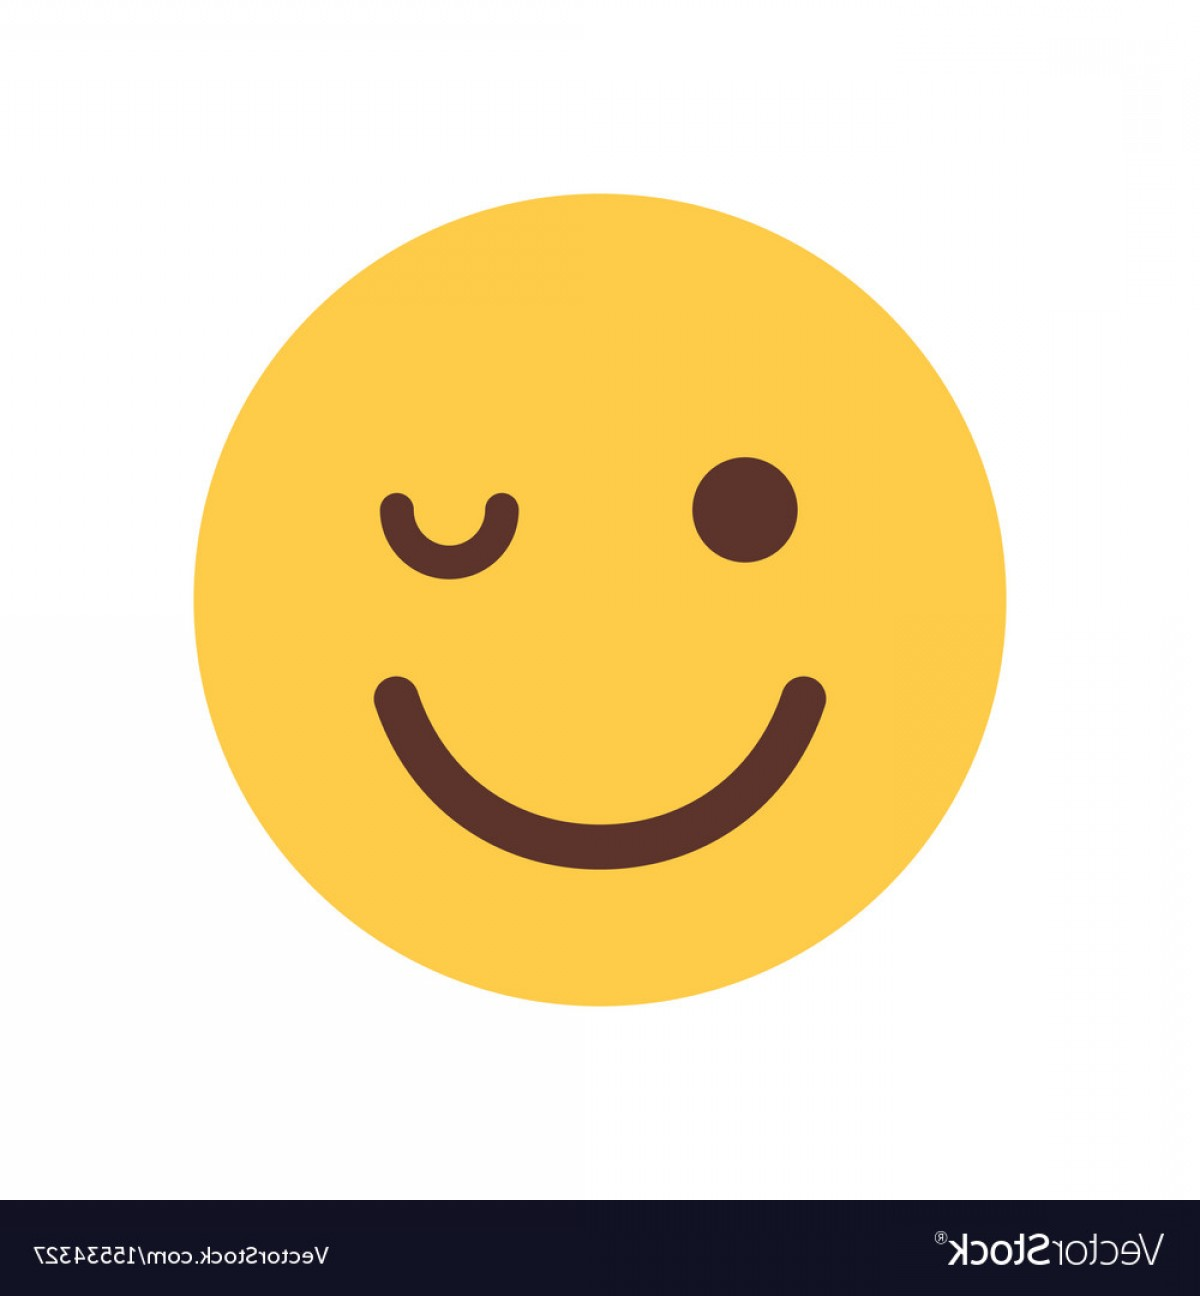 Smiley-Face Winking Vector: Yellow Smiling Cartoon Face Winking Emoji People Vector